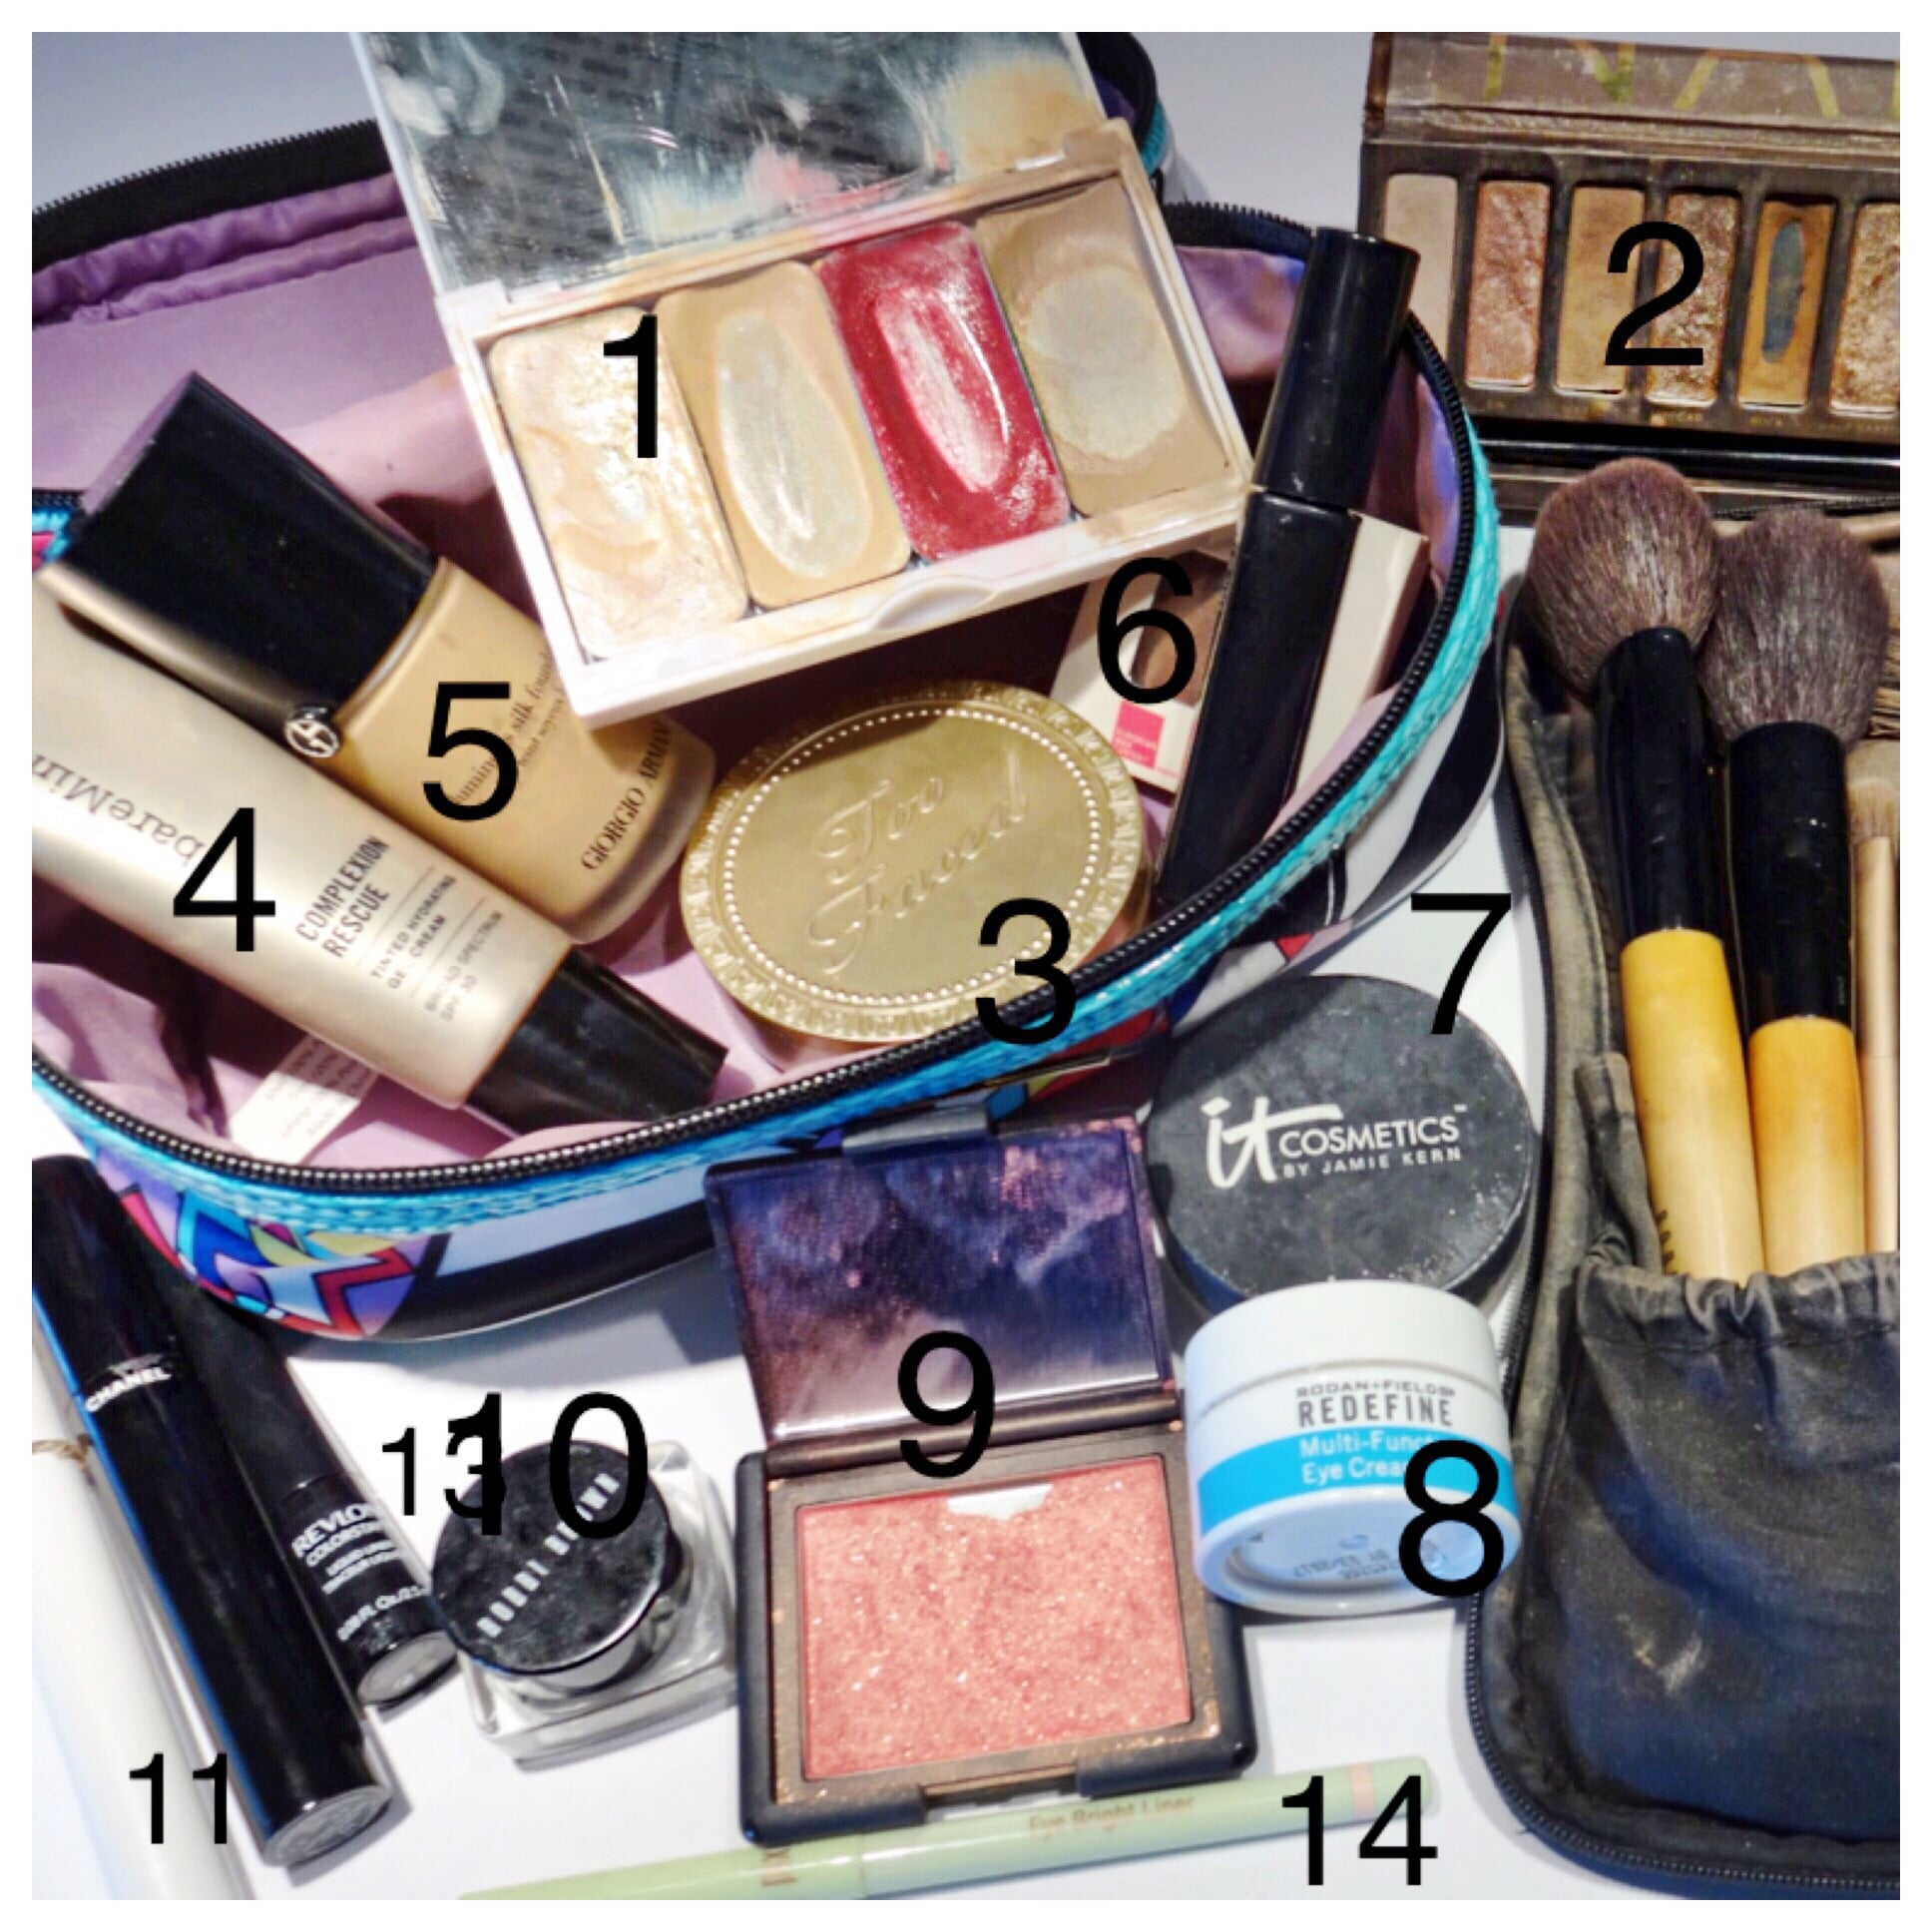 1)  111D Foundation  2)  Urban Decay  3)  Too Faced Bronzer  4)  Complexion Rescue  5)  Armani Foundation  6) Brow Drama  7)  Bye Bye Pores  8)  Redefine Eye Cream  9)  NARS Blush  10)  Shadow Primer  11)  Lancome Booste r 12) Forgot to number it but its  Chanel Mascara  13)  Revlon liner  14) Pixi Eye Bright